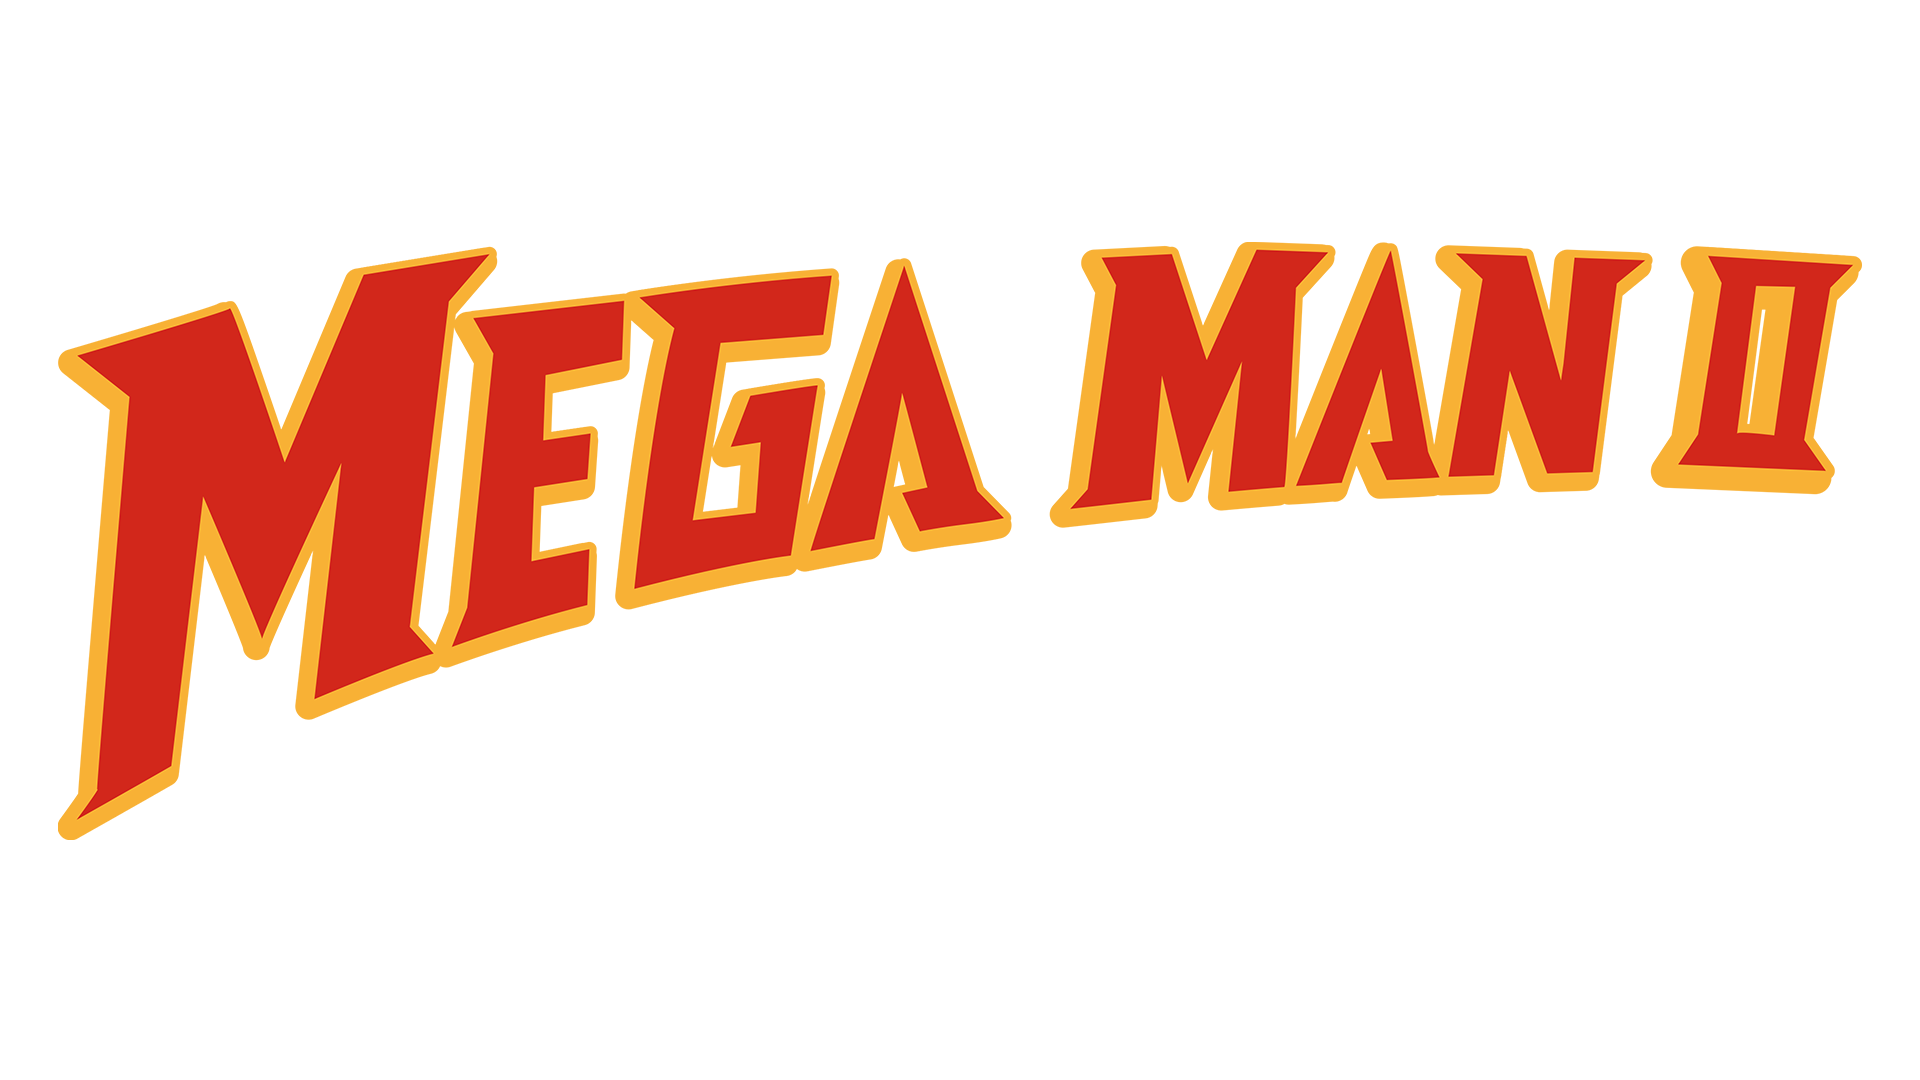 Mega Man II (Game Boy) Logo